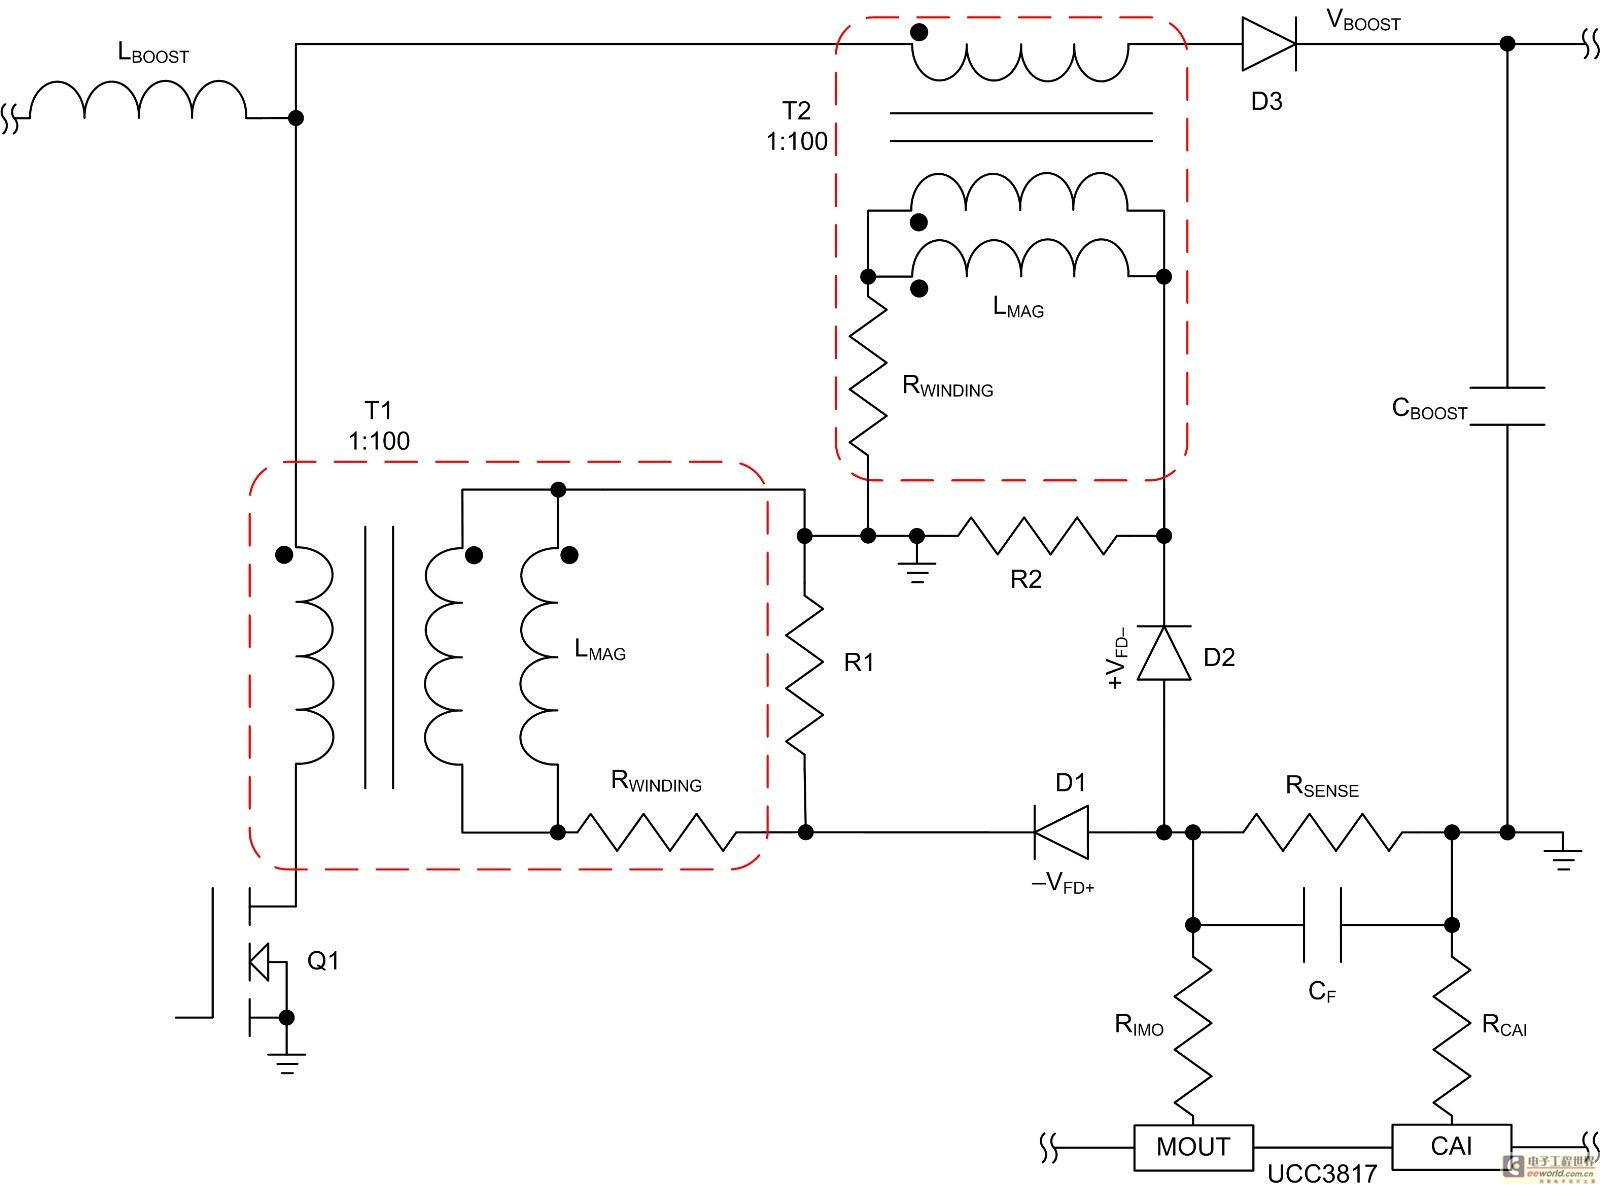 Results Page 246 About 3 Phase Motor Speed Control Searching Power Adjustable Angle With Triac Using Atmega8 The Electric Current Of Mode Average Measures Circuit Design